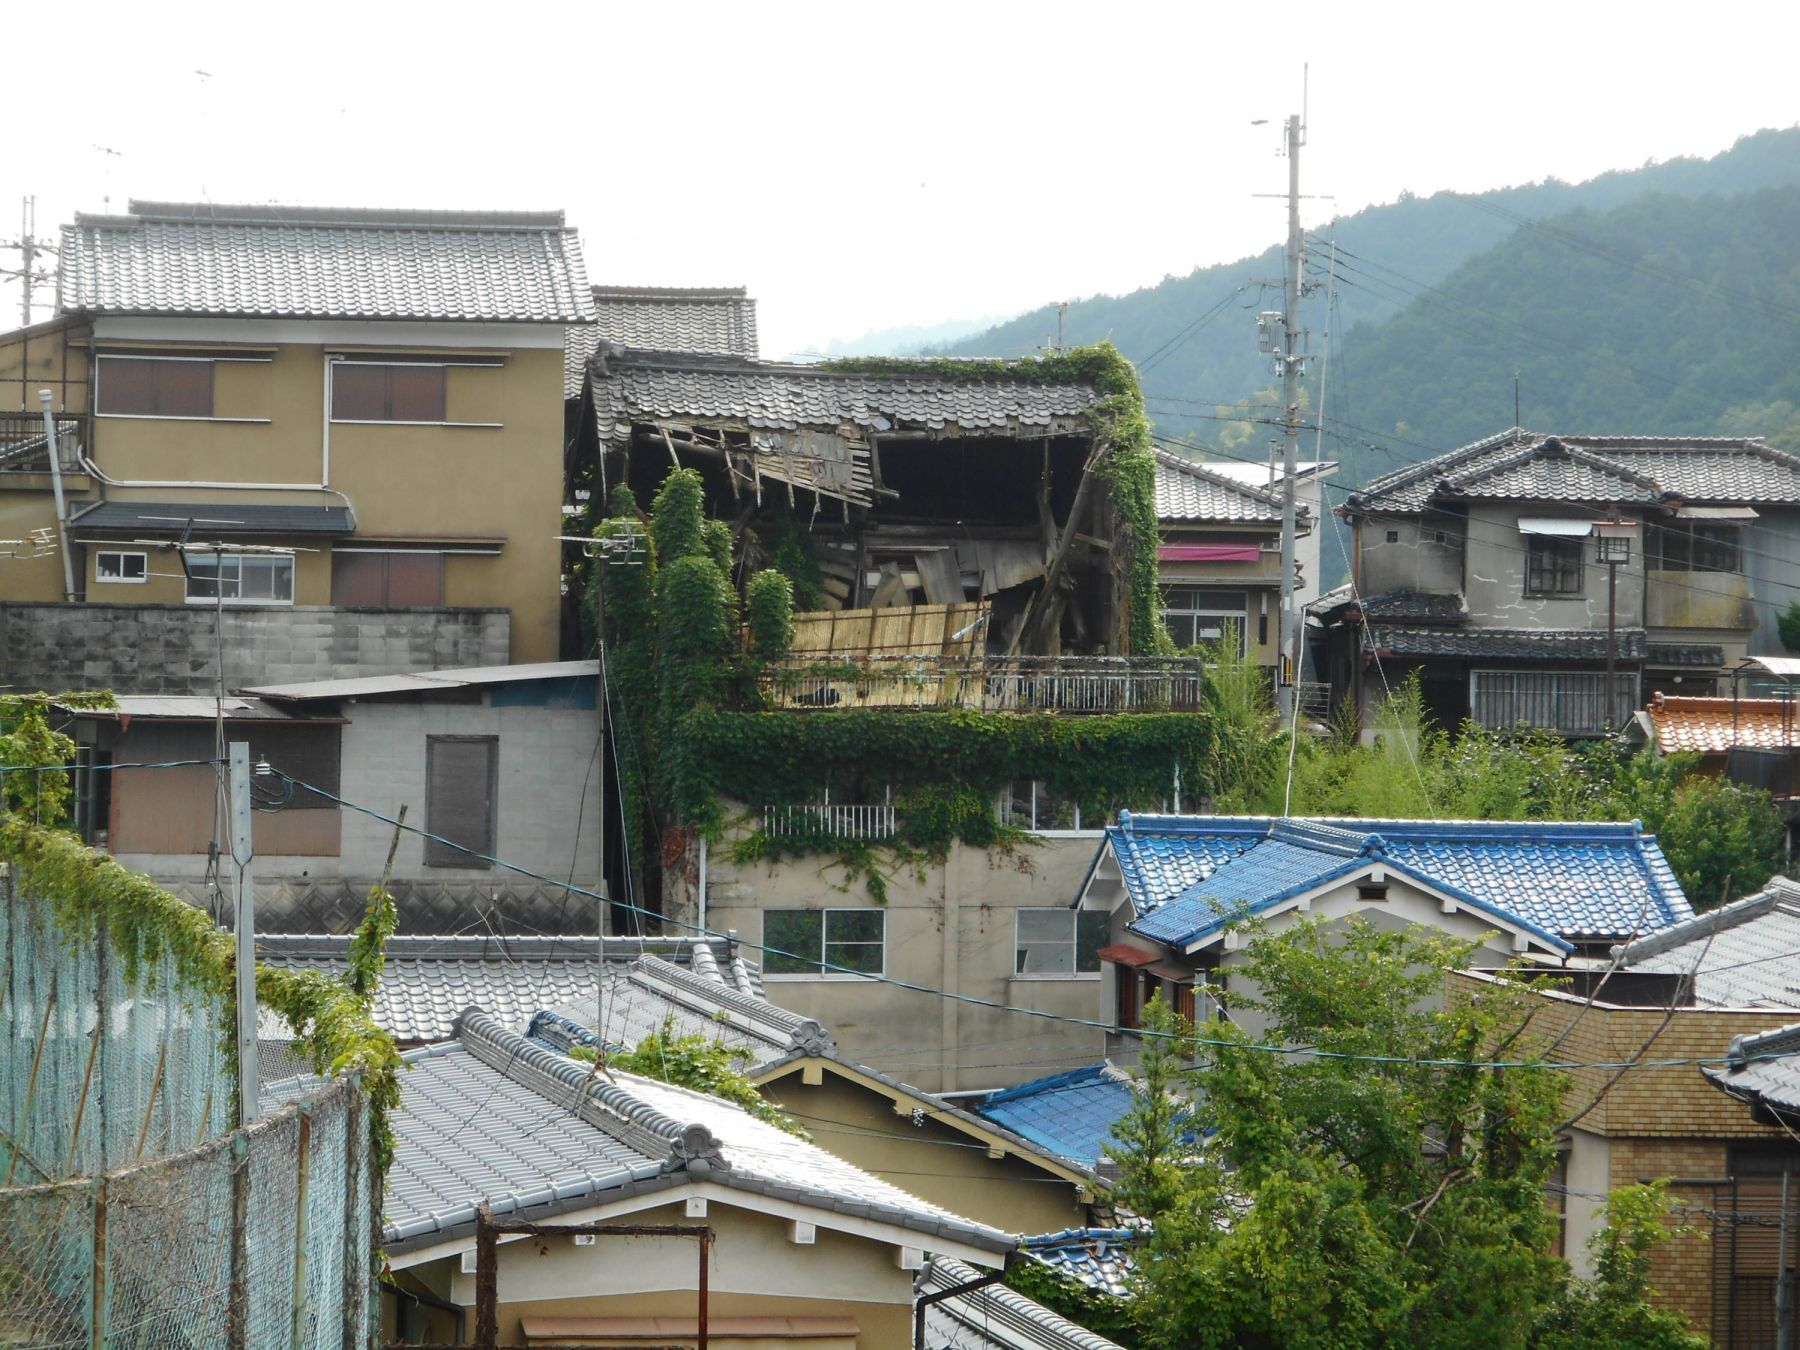 The tumble down houses in Japan 007